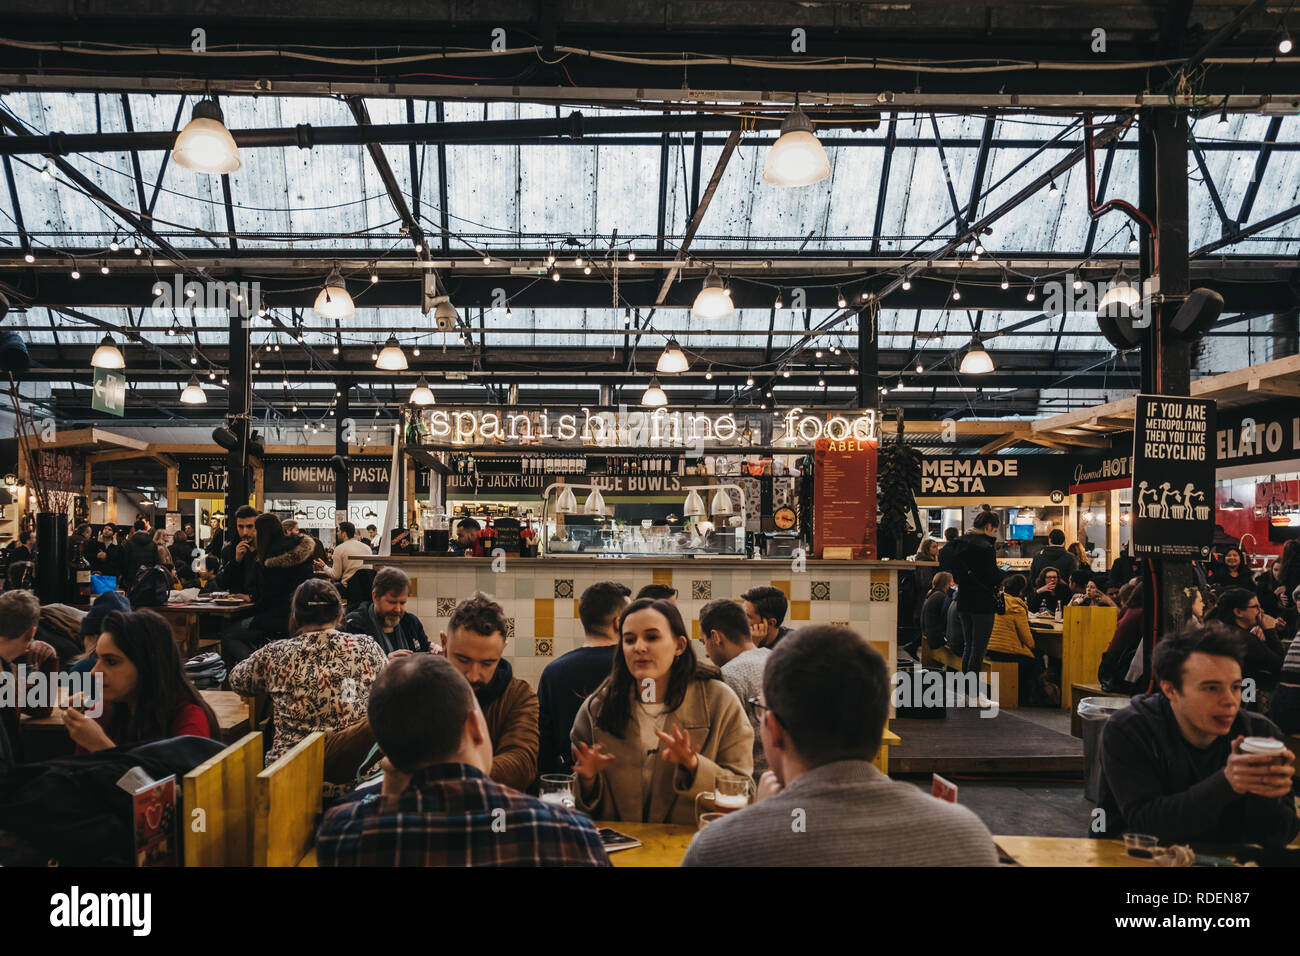 London, UK - January 13, 2019: People at Spanish food stand in Mercato Metropolitano, the first sustainable community market in London focused on revi - Stock Image